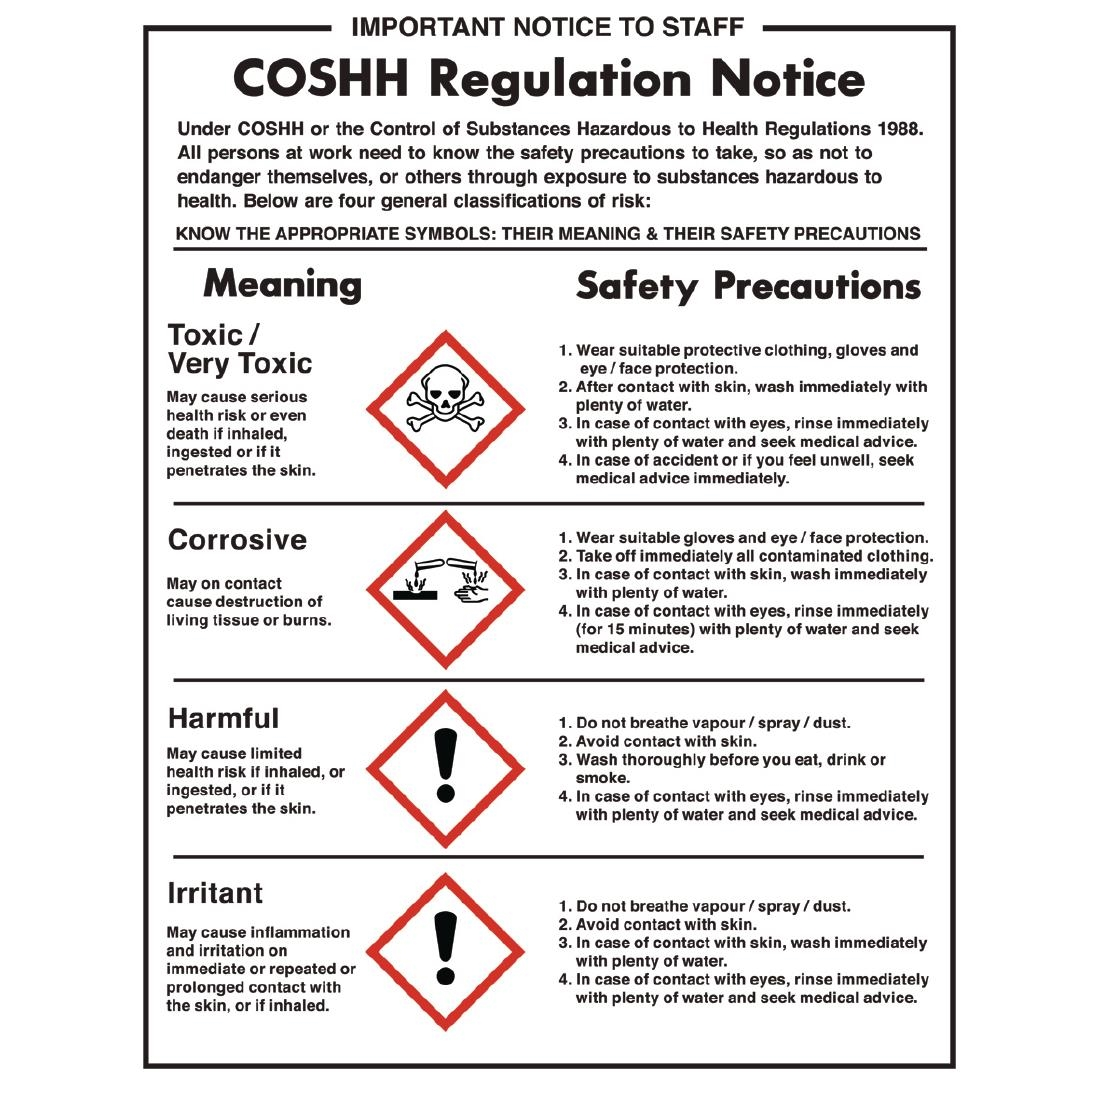 Medical symbols and meaning images symbol and sign ideas coshh regulations sign w396 buy online at nisbets cossh regulations sign cossh regulations sign buycottarizona buycottarizona